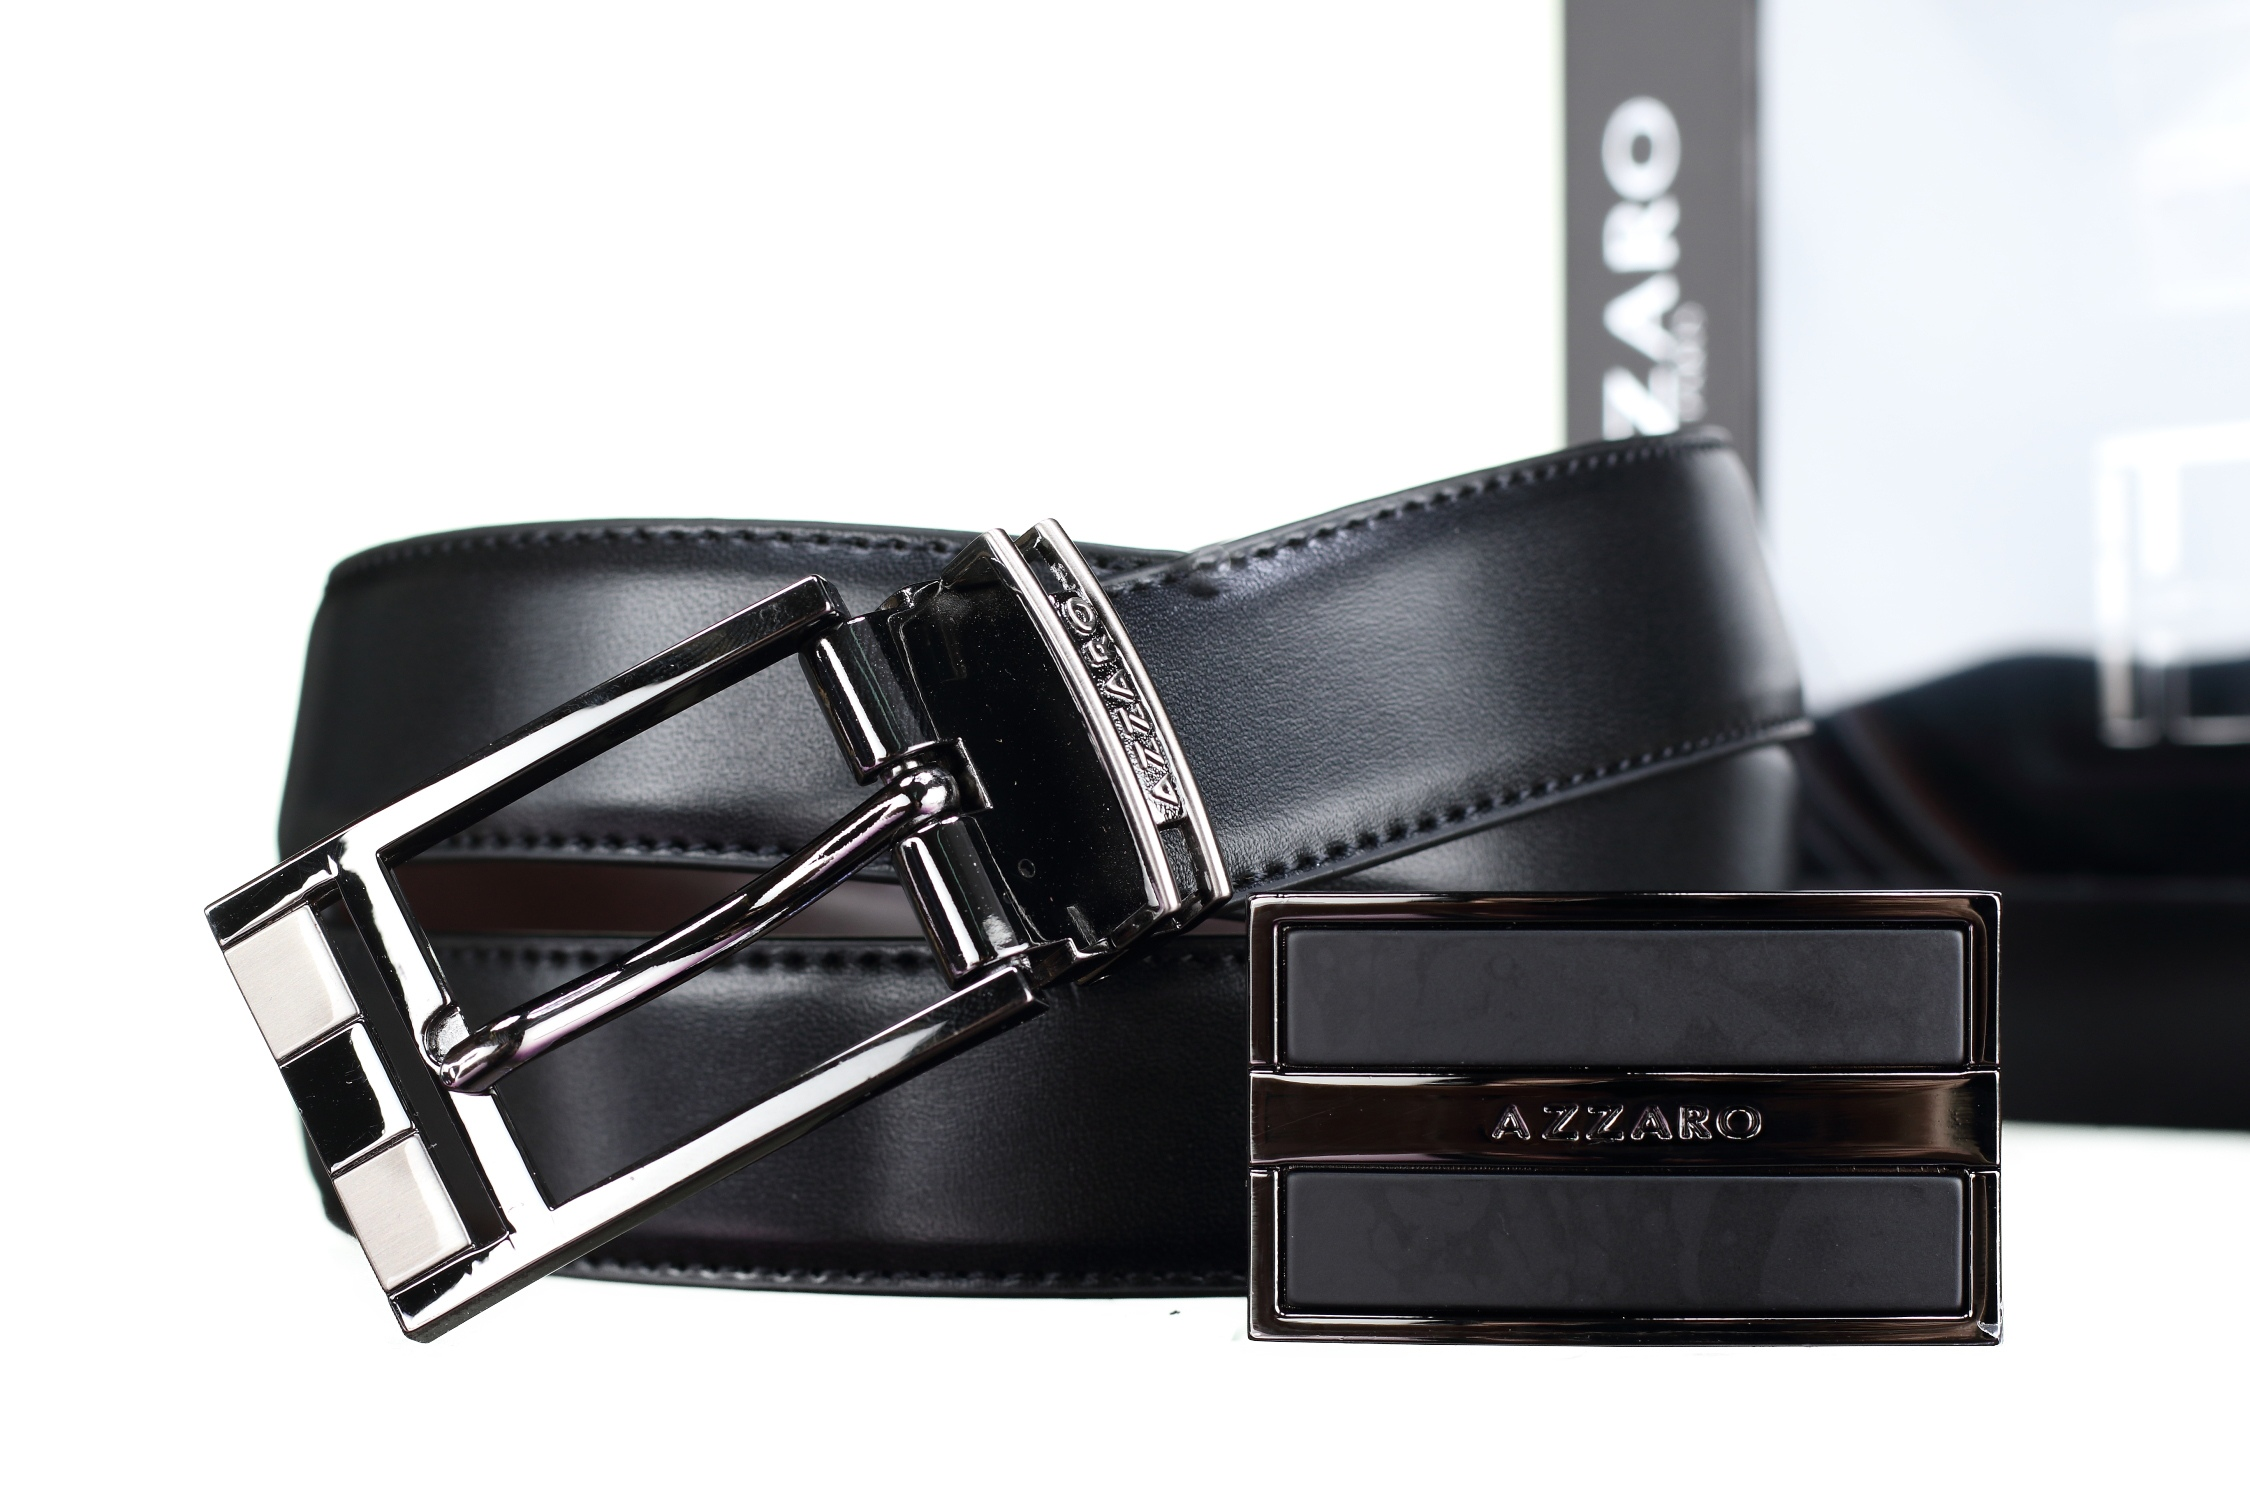 http://www.leadermode.com/137186/azzaro-coffret-2-boucles-148-new-reversible-noir-marron.jpg